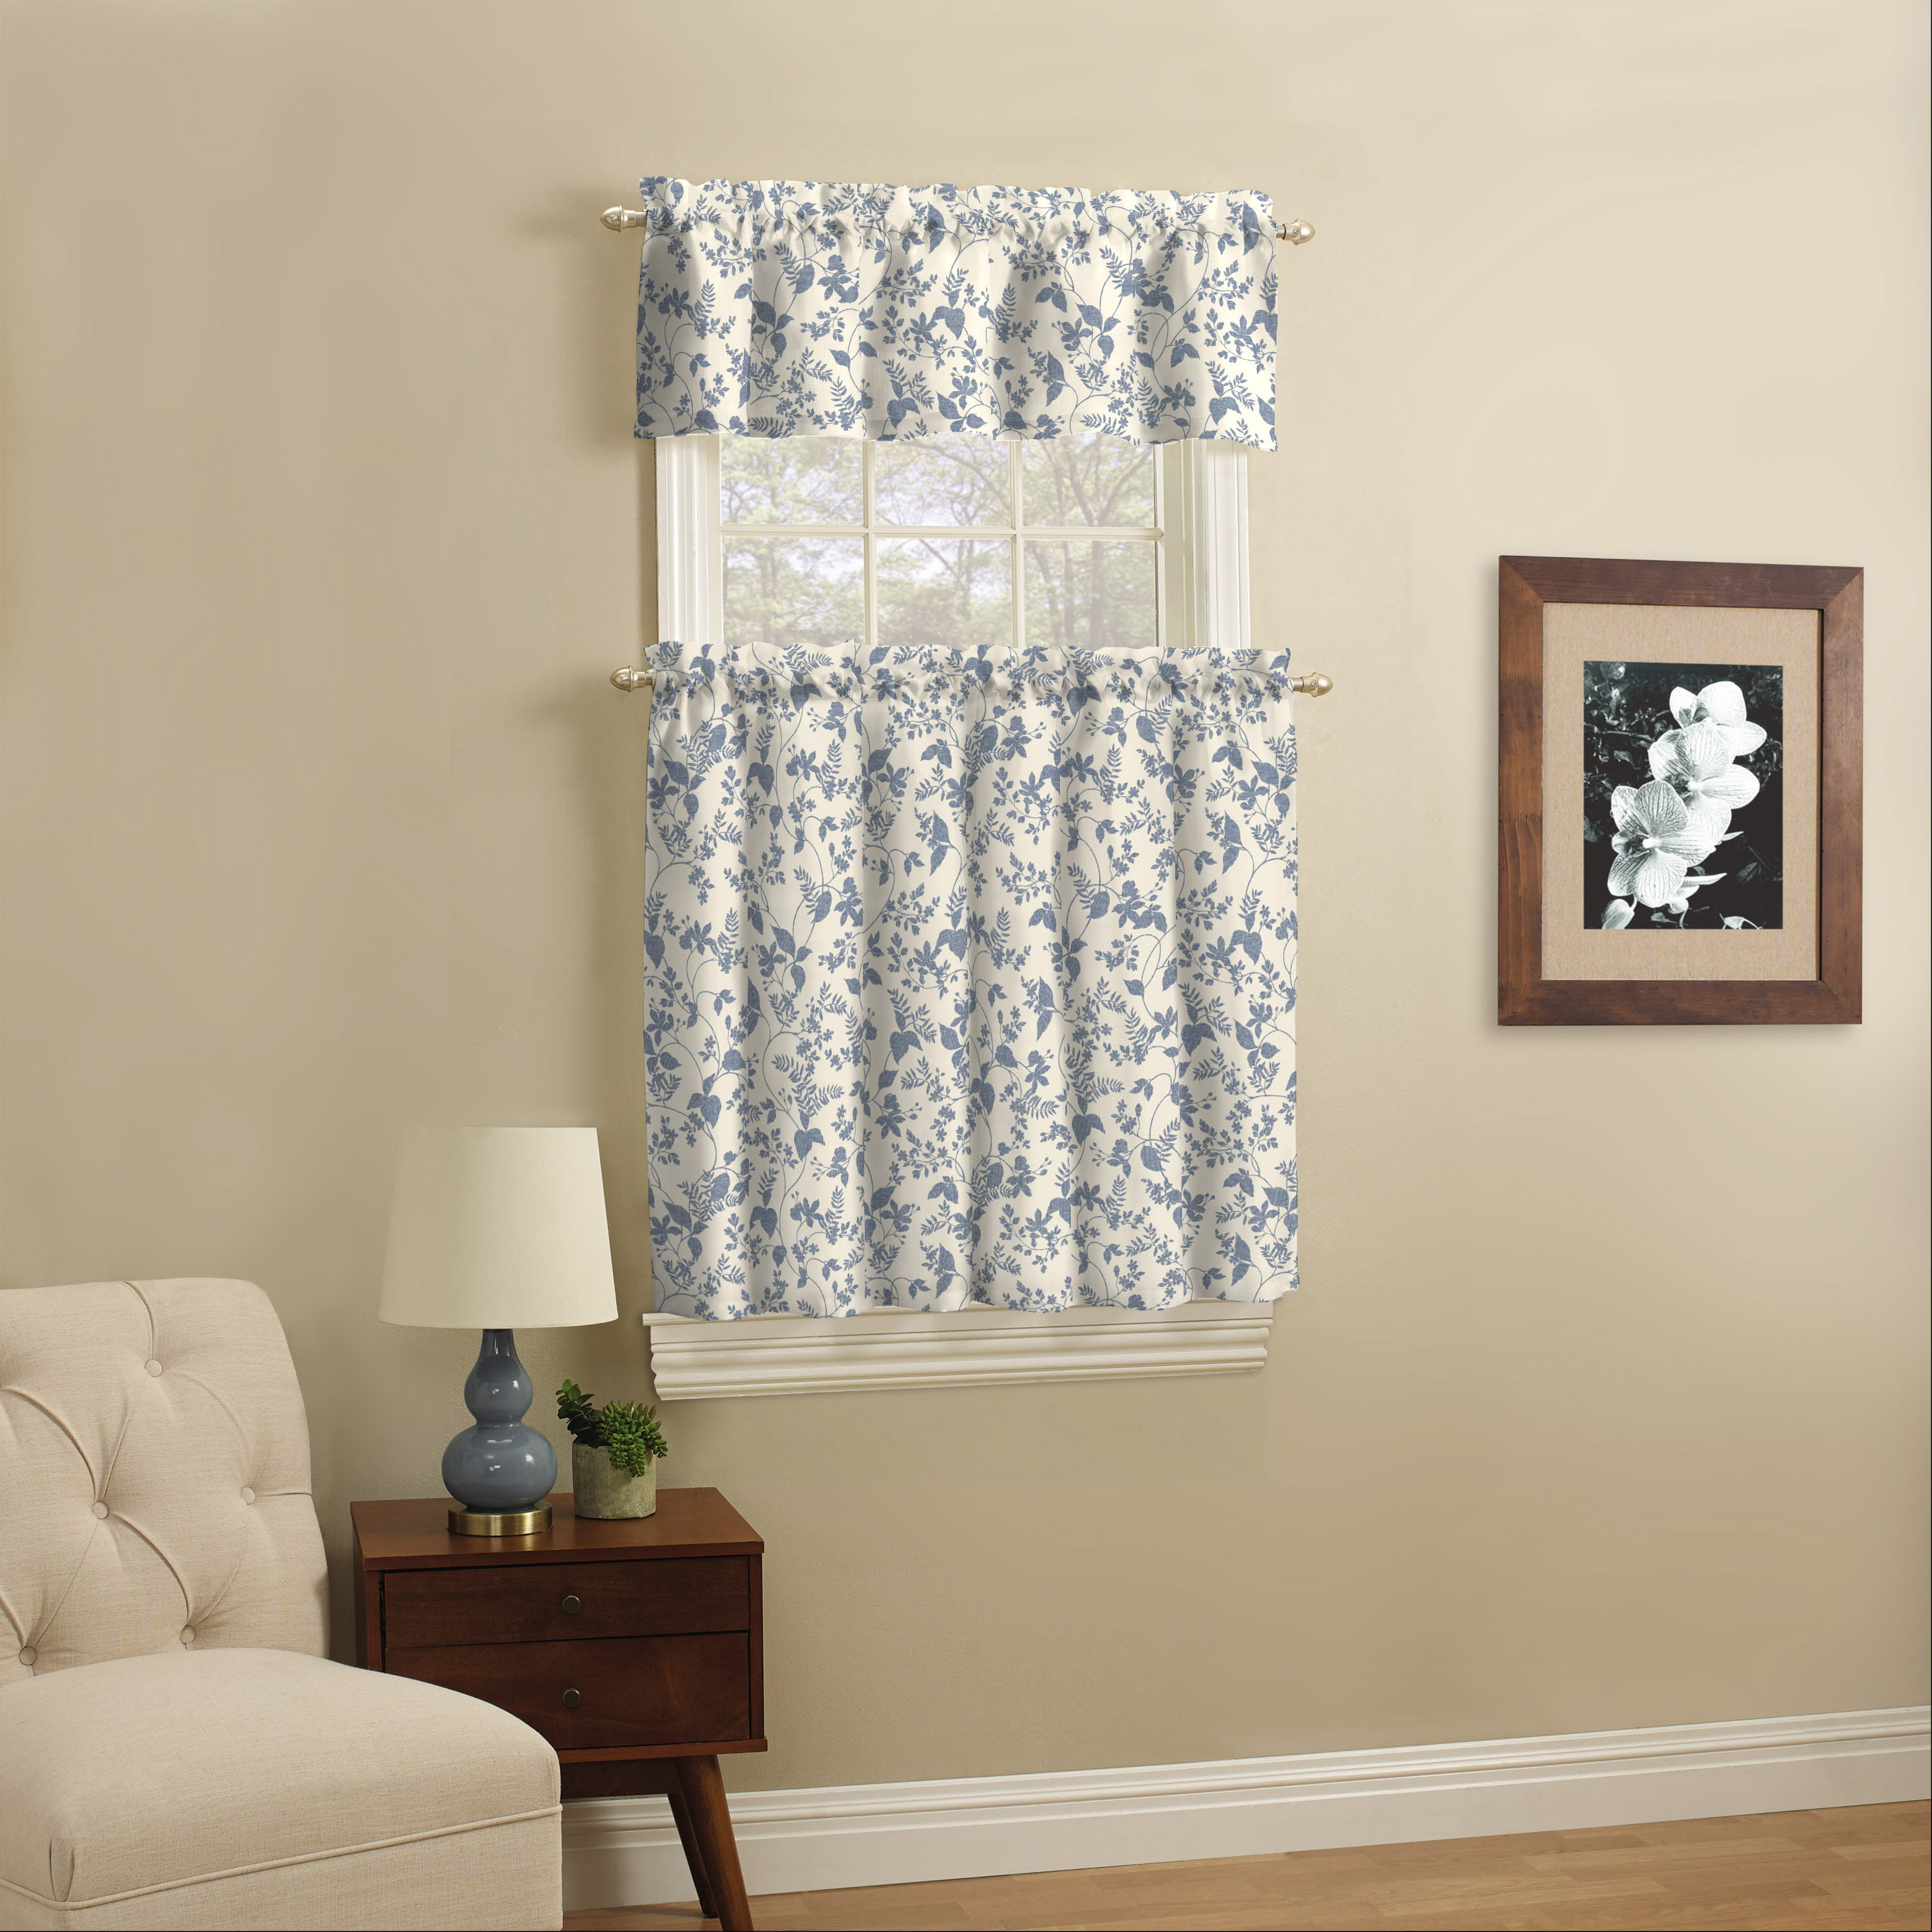 Mainstays Leaf Print Light Filtering Rod Pocket Kitchen Curtain Tier And Valance 3 Piece Set Blue 56 X 36 Walmart Com Walmart Com